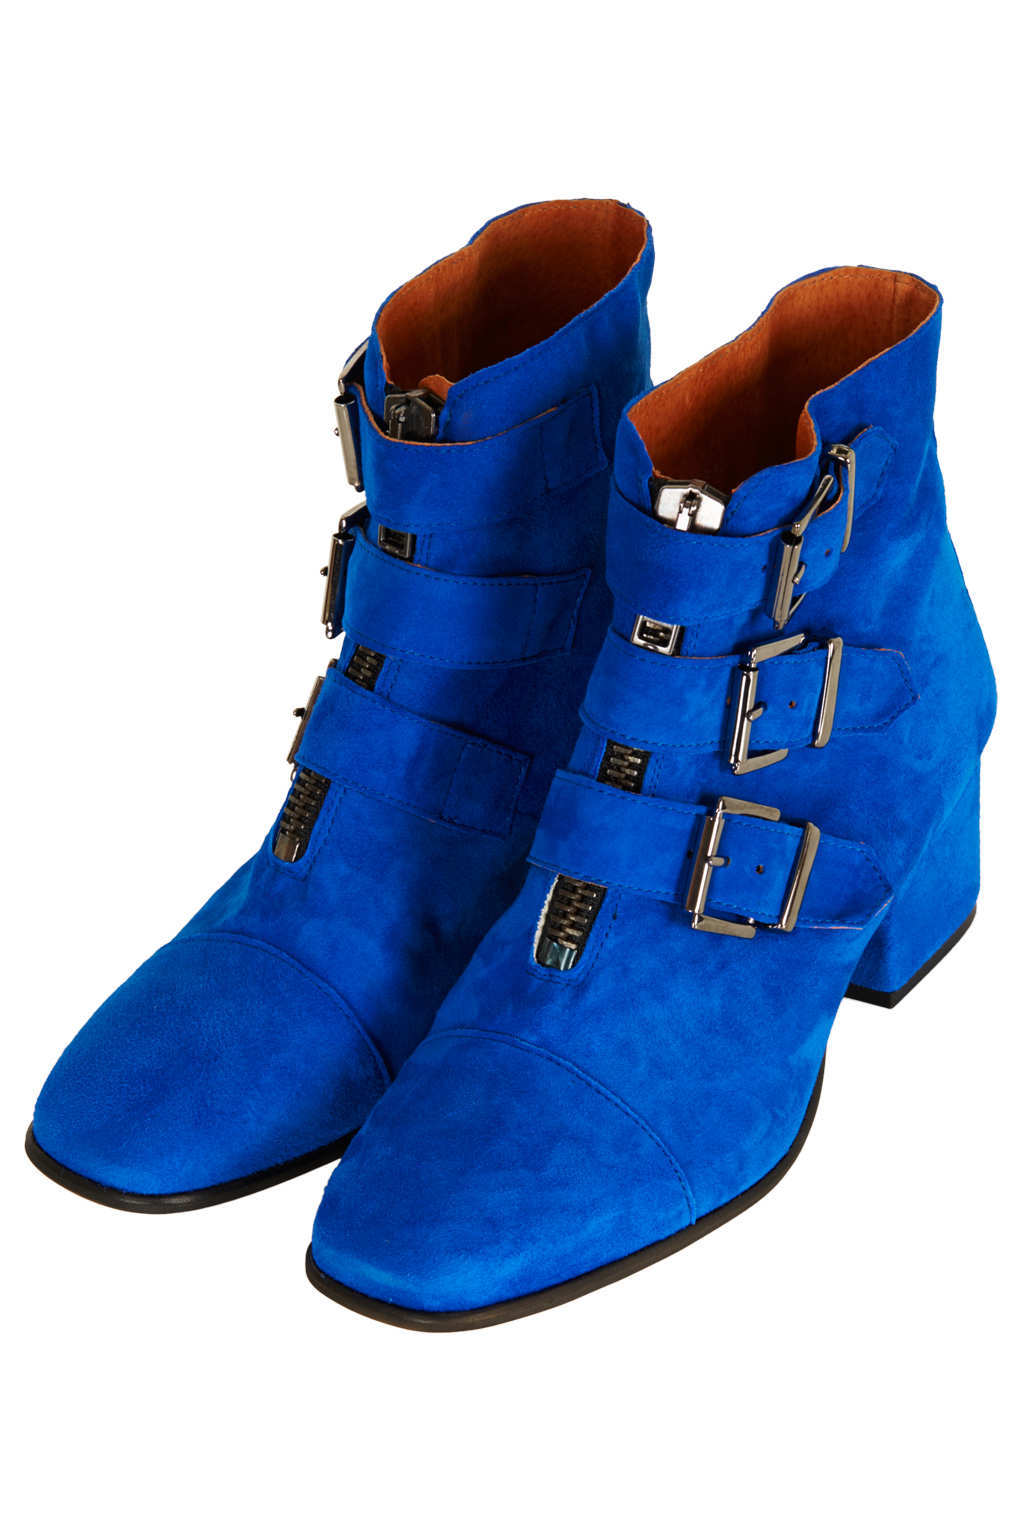 Blue Ankle Boots - Boot Hto